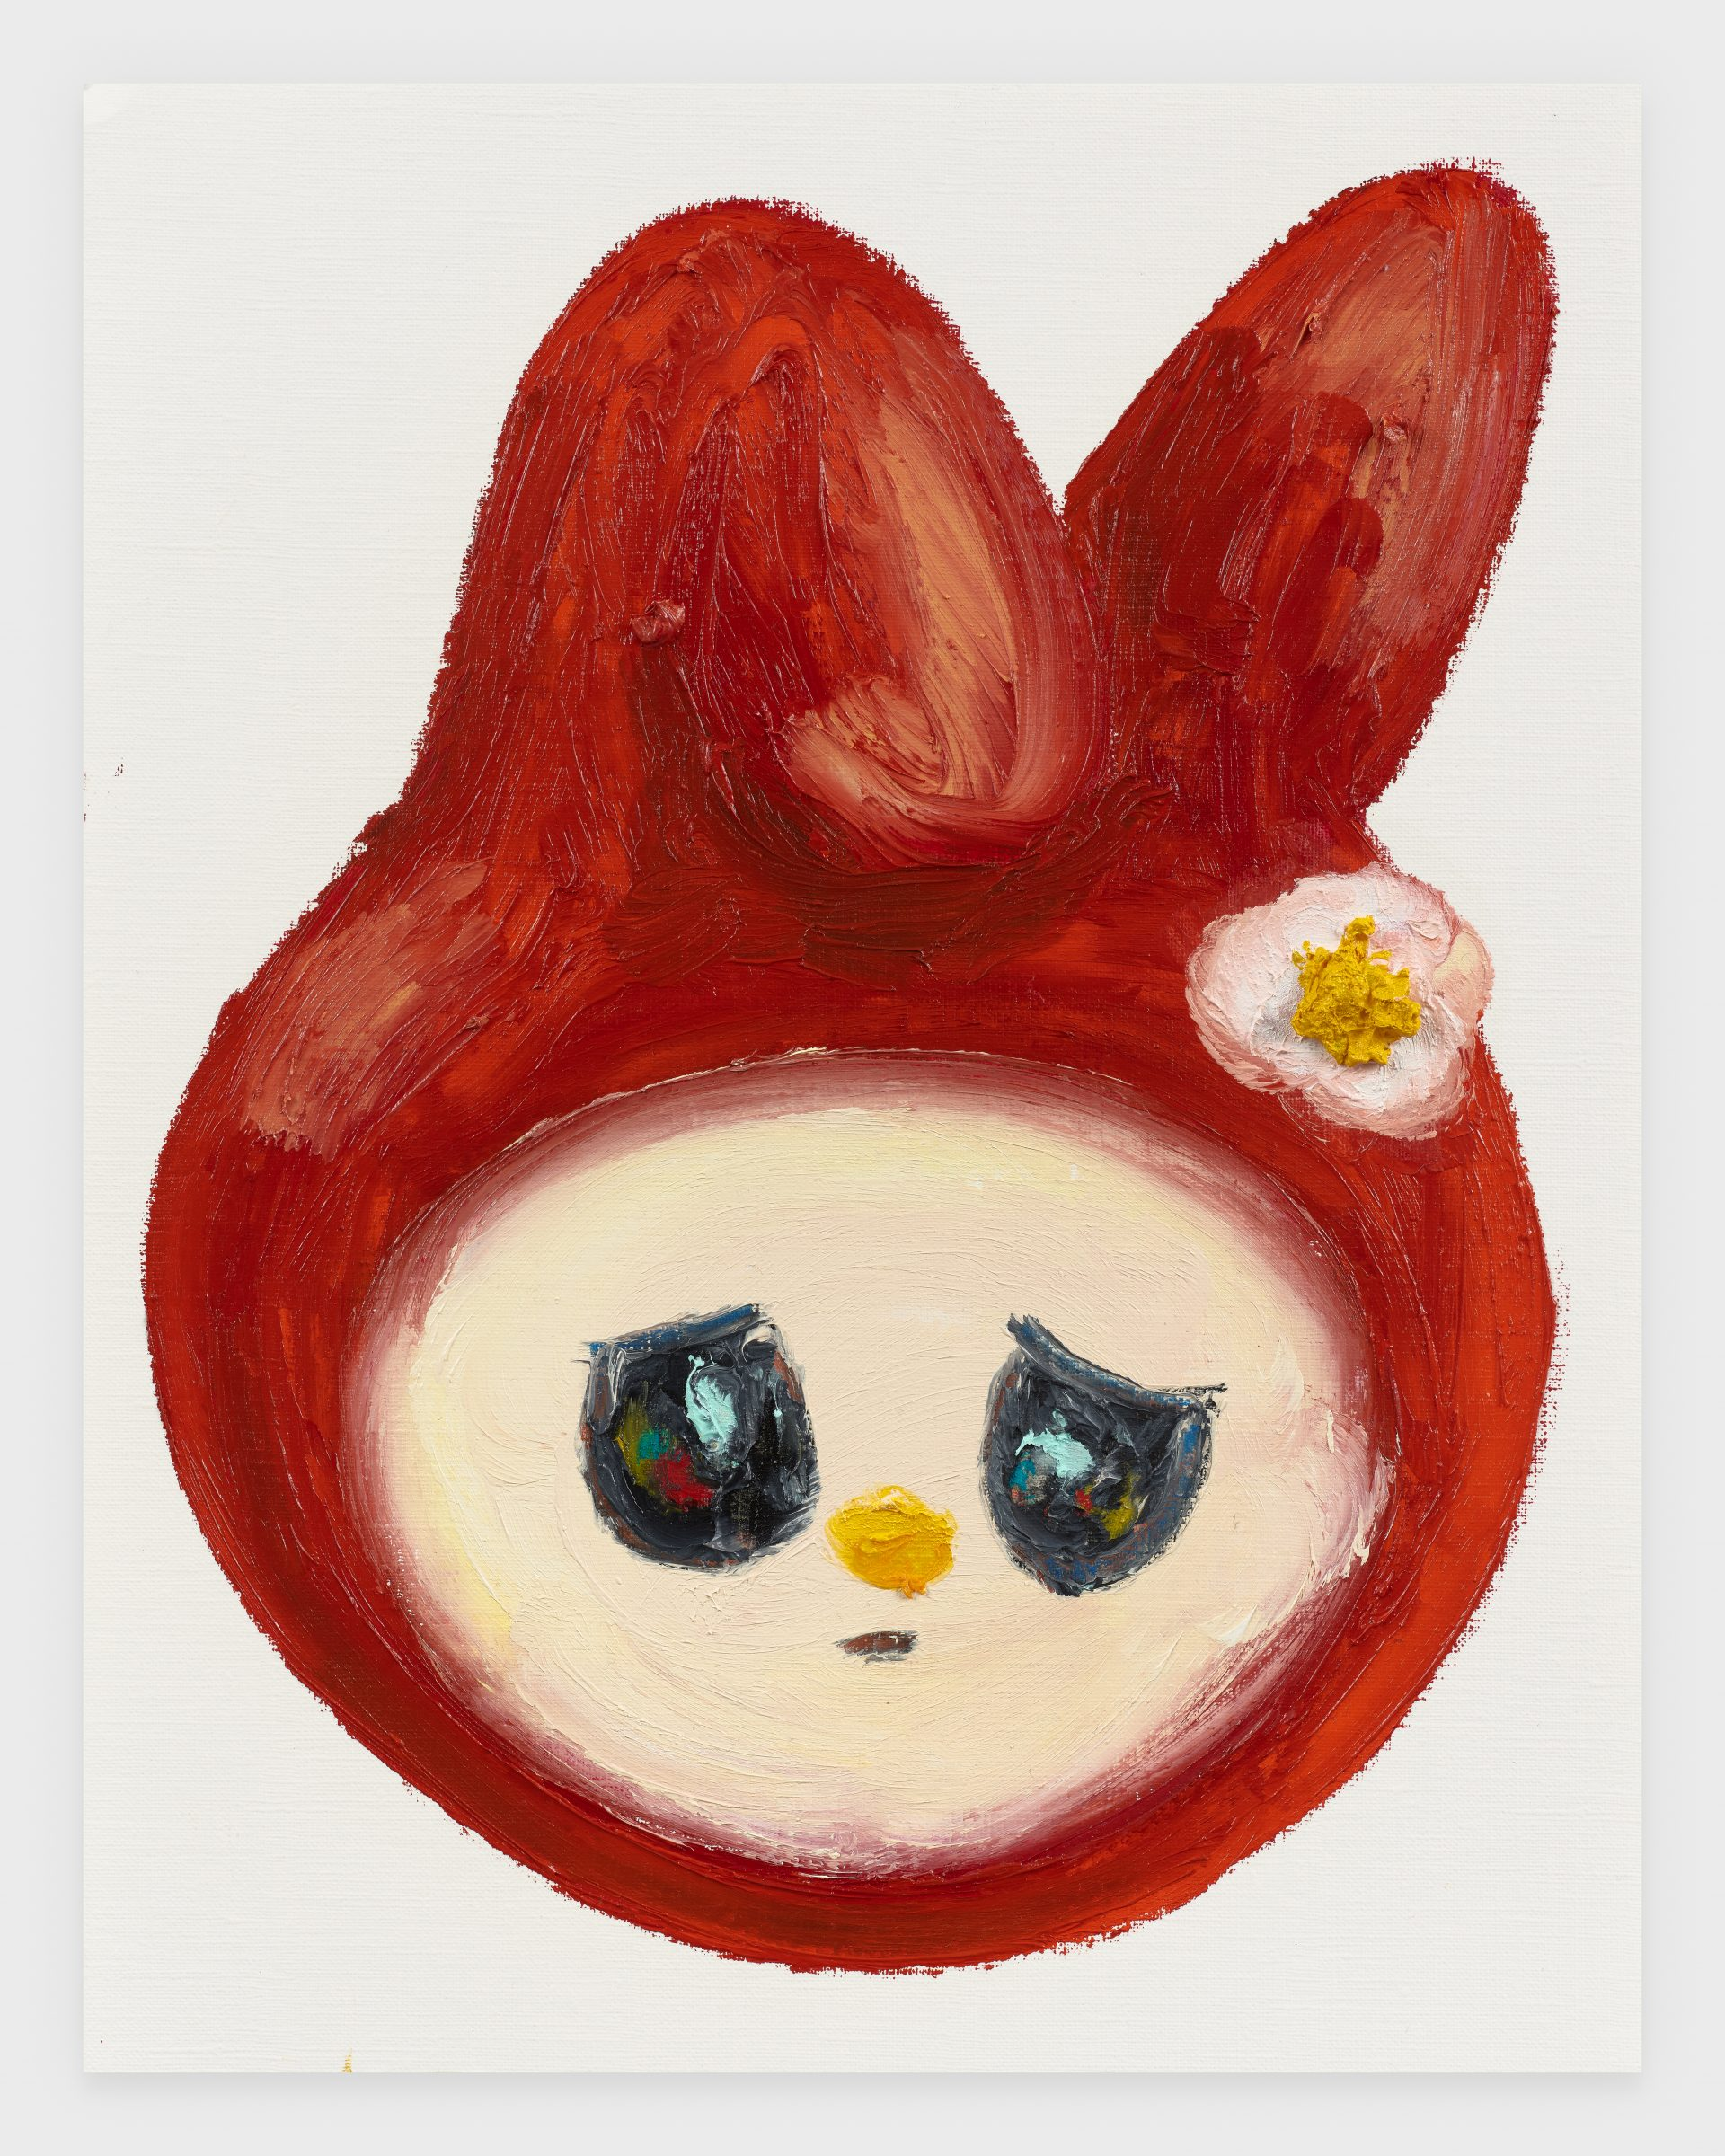 My Melody, 2020, Oil stick on archival paper, 11 x 14 inches